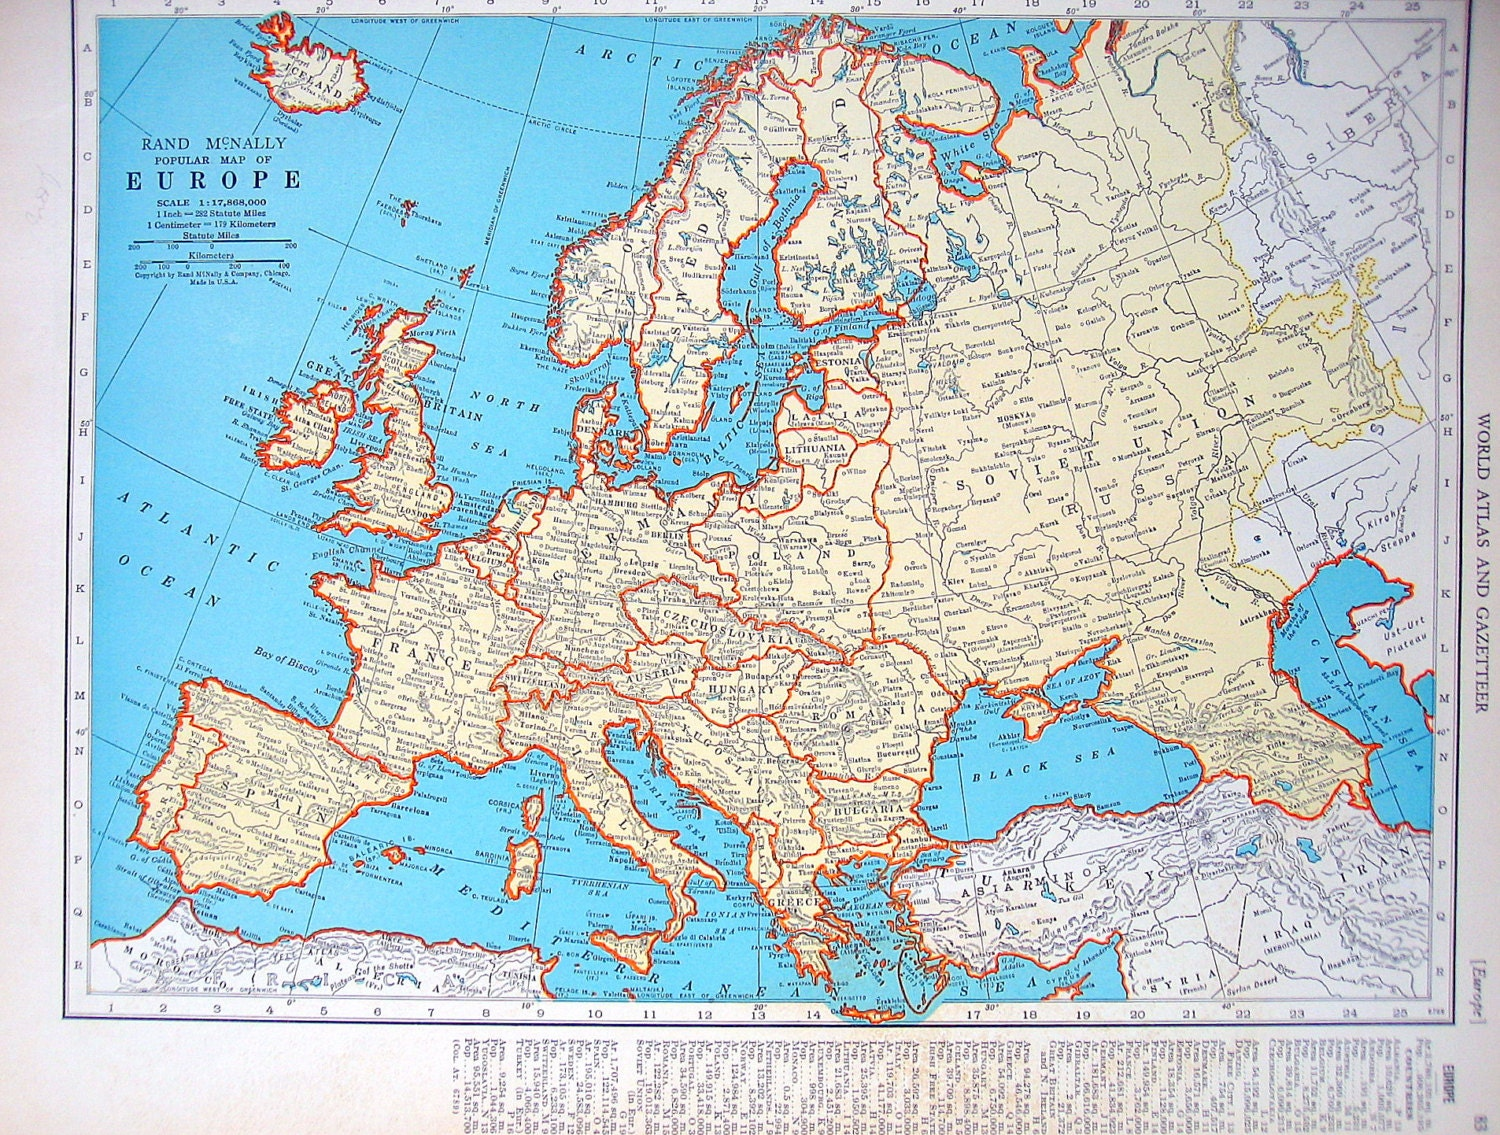 British Isles: Map Of Europe And The British Isles 1937 Vintage Rand